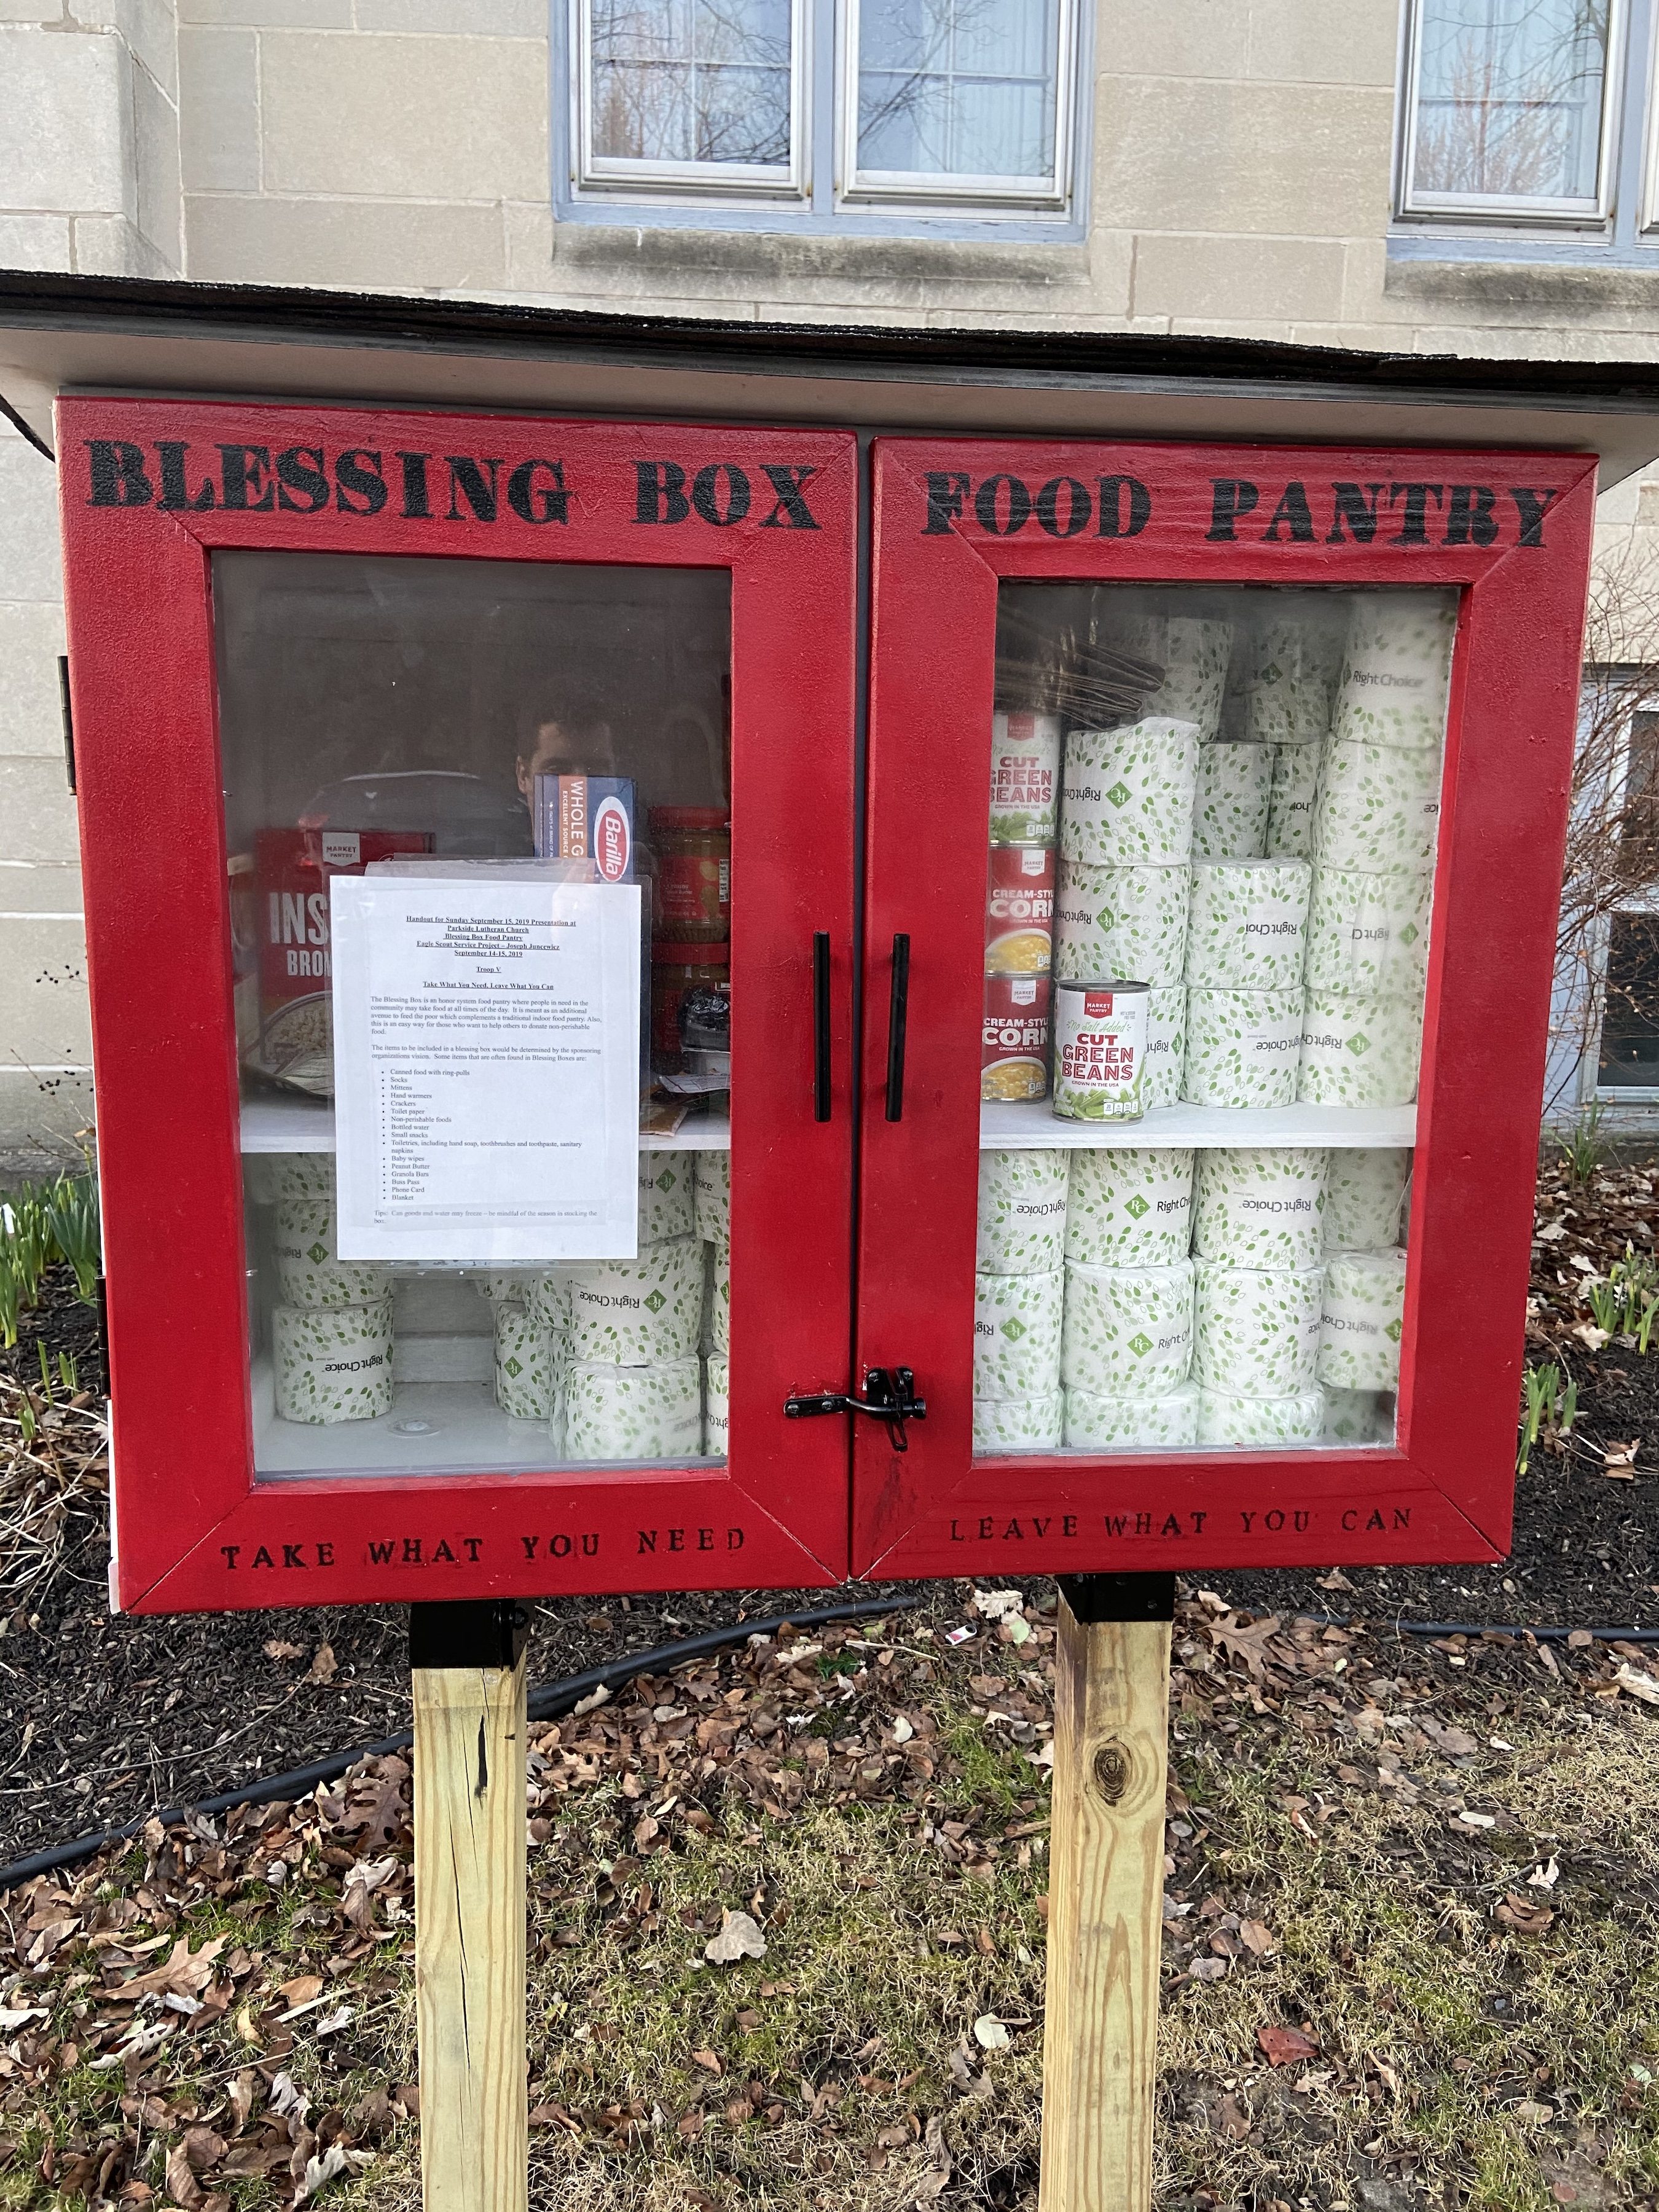 Parkside Lutheran Blessing Box Photo 1